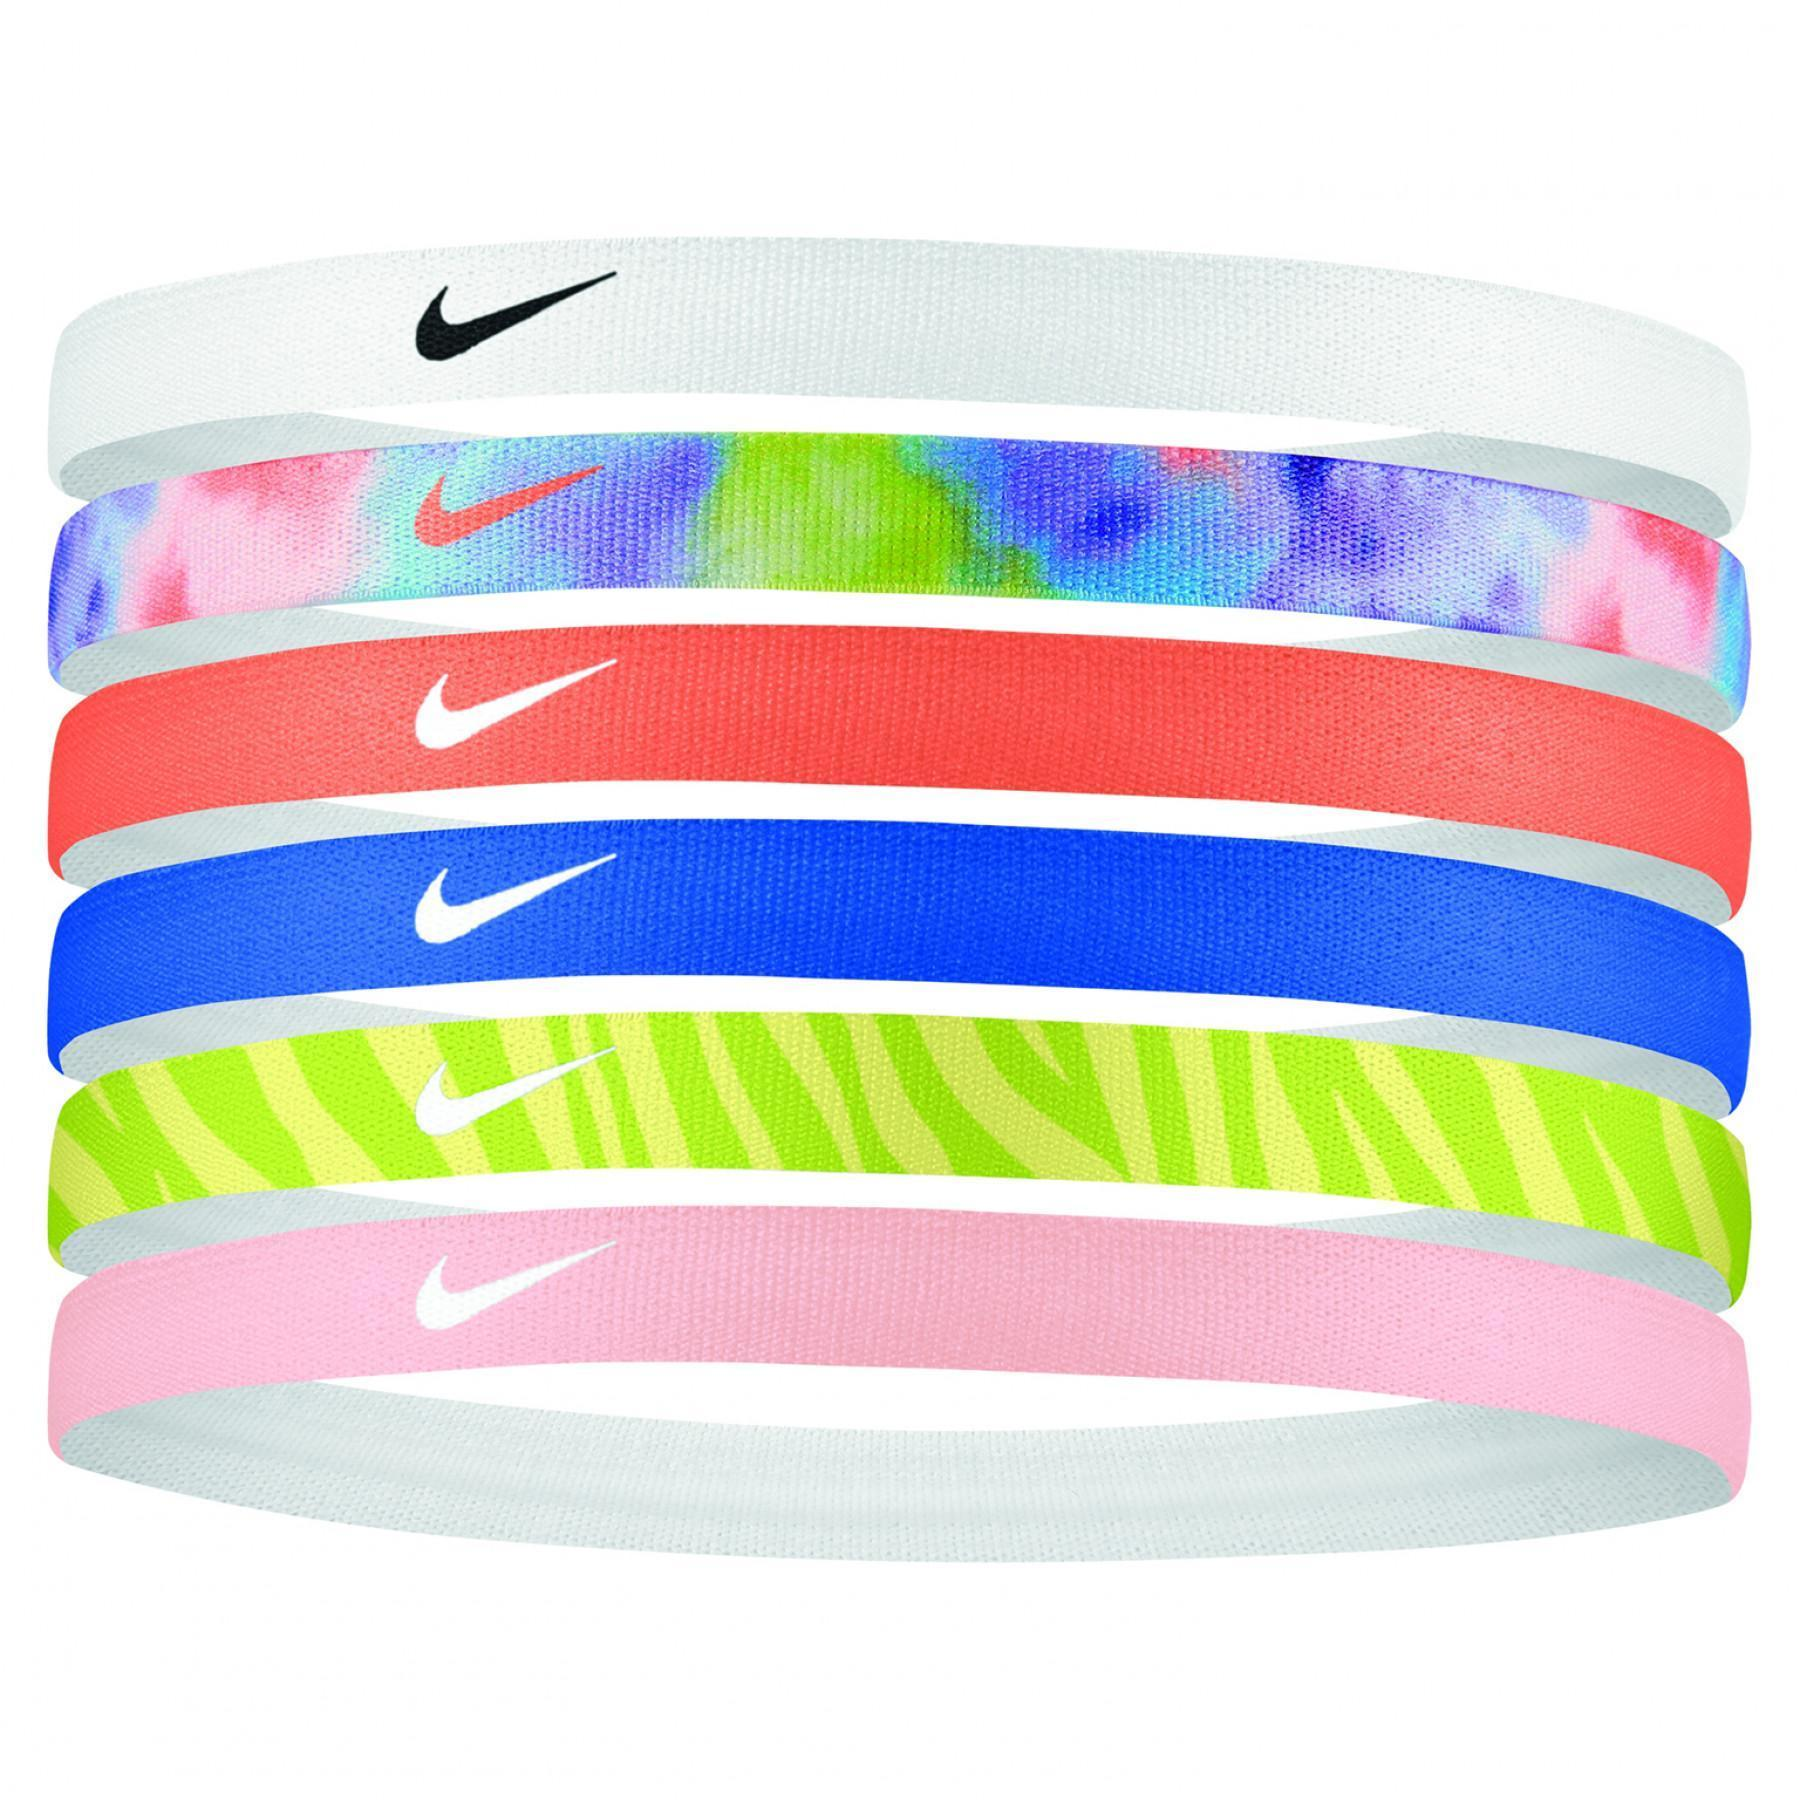 Pack of 6 Nike rubber bands